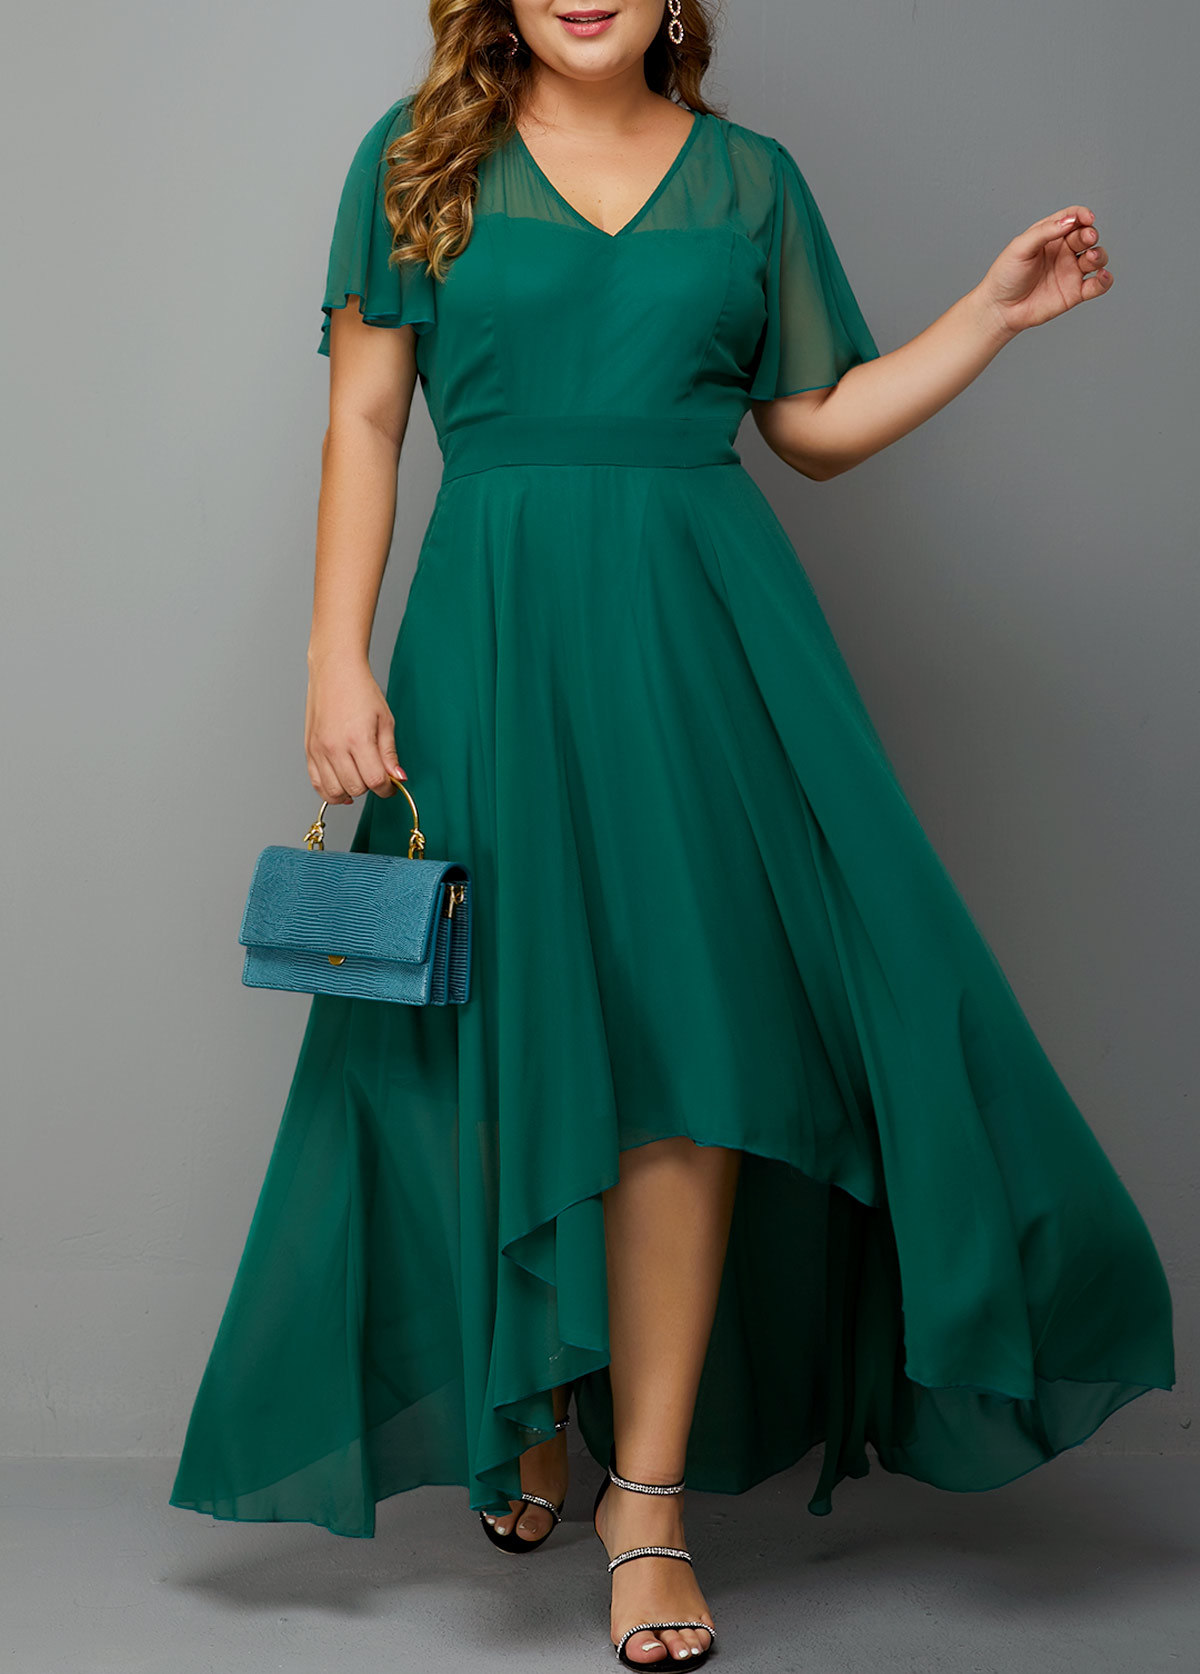 High Waist Side Zipper Plus Size Chiffon Dress